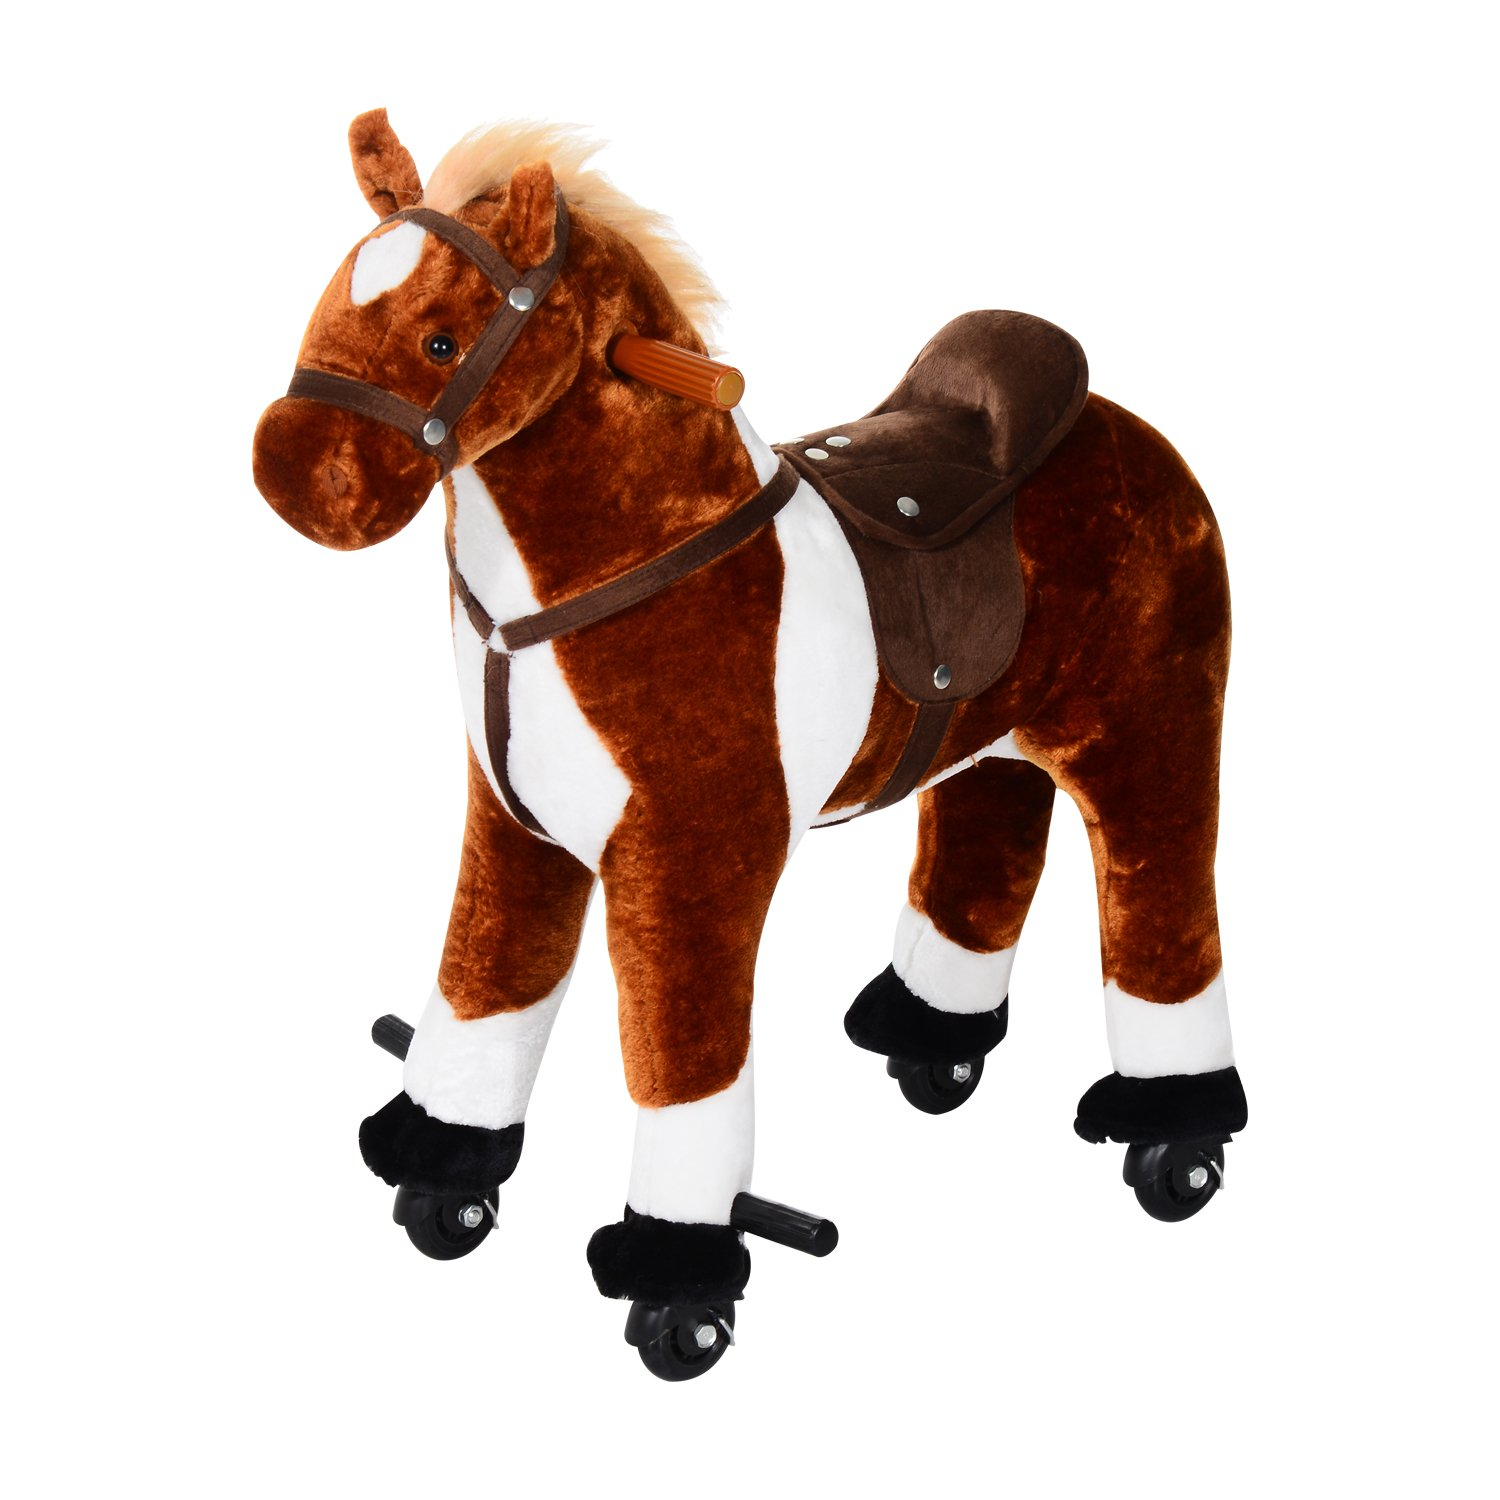 Qaba Kids Plush Ride On Toy Walking Horse with Wheels and Realistic Sounds - Brown